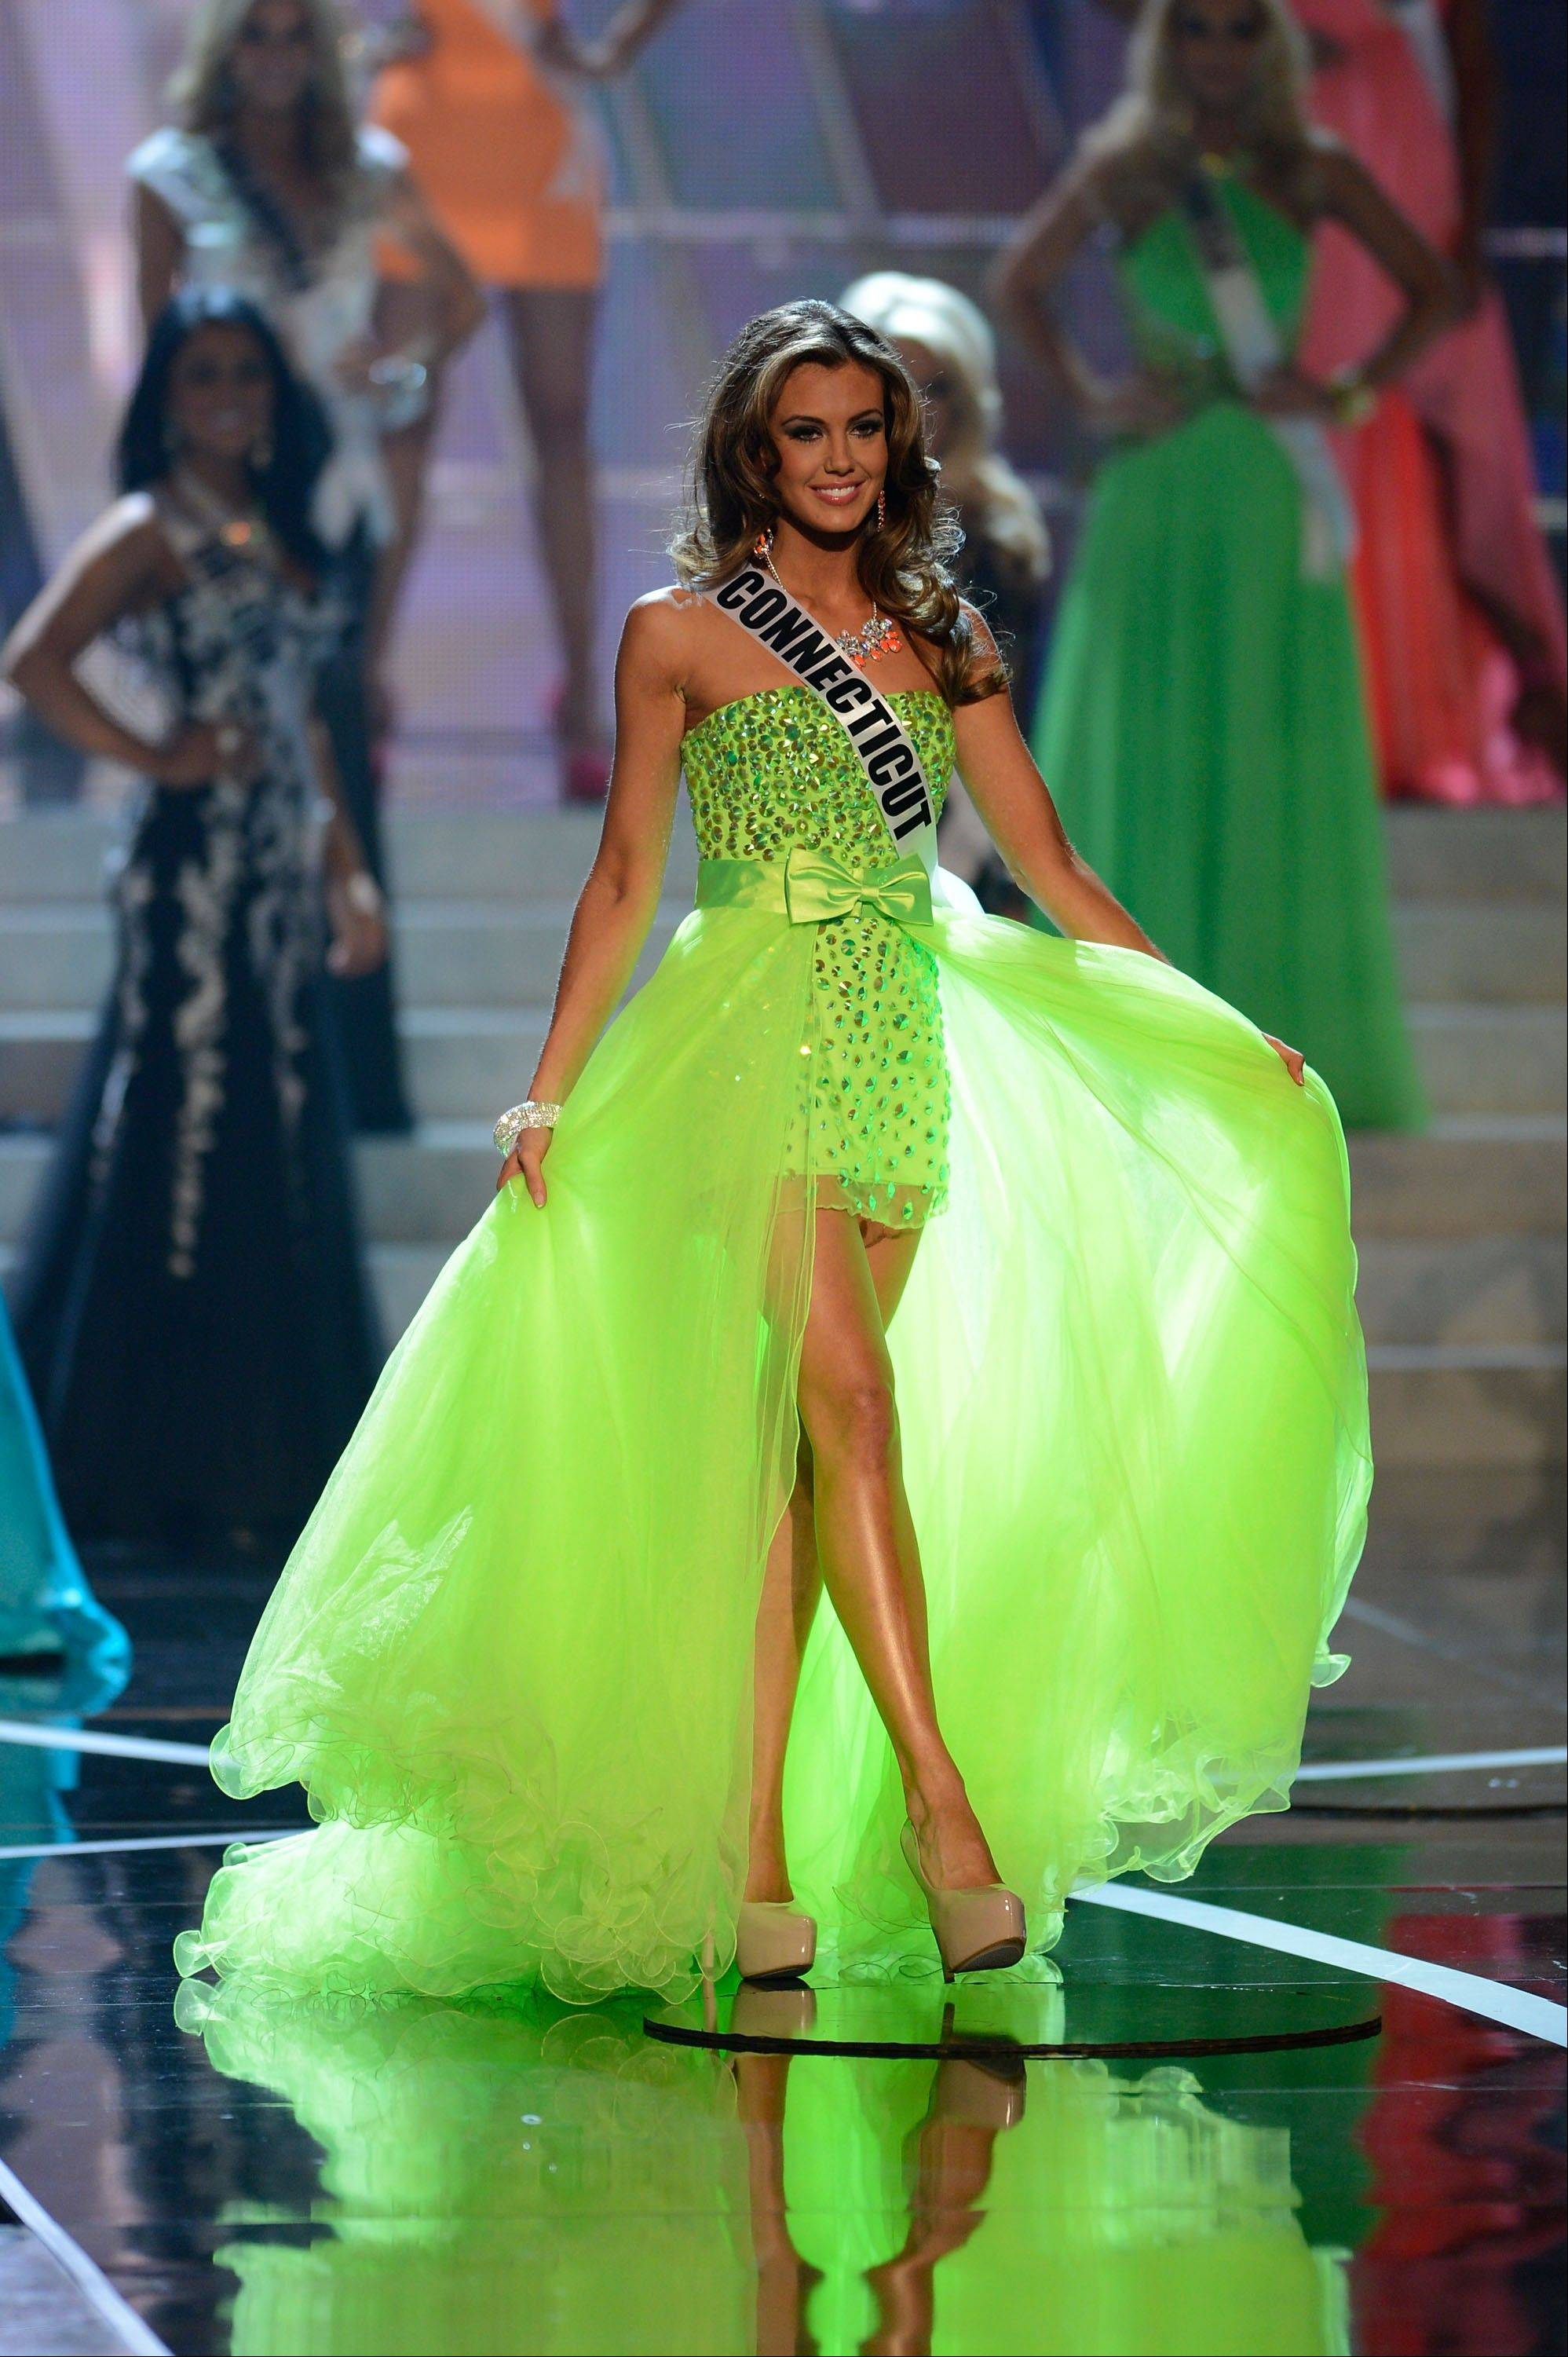 Miss Connecticut Erin Brady, from Glastonbury, Conn., walks the runway during the introductions of the Miss USA 2013 pageant, Sunday, June 16, 2013, in Las Vegas.